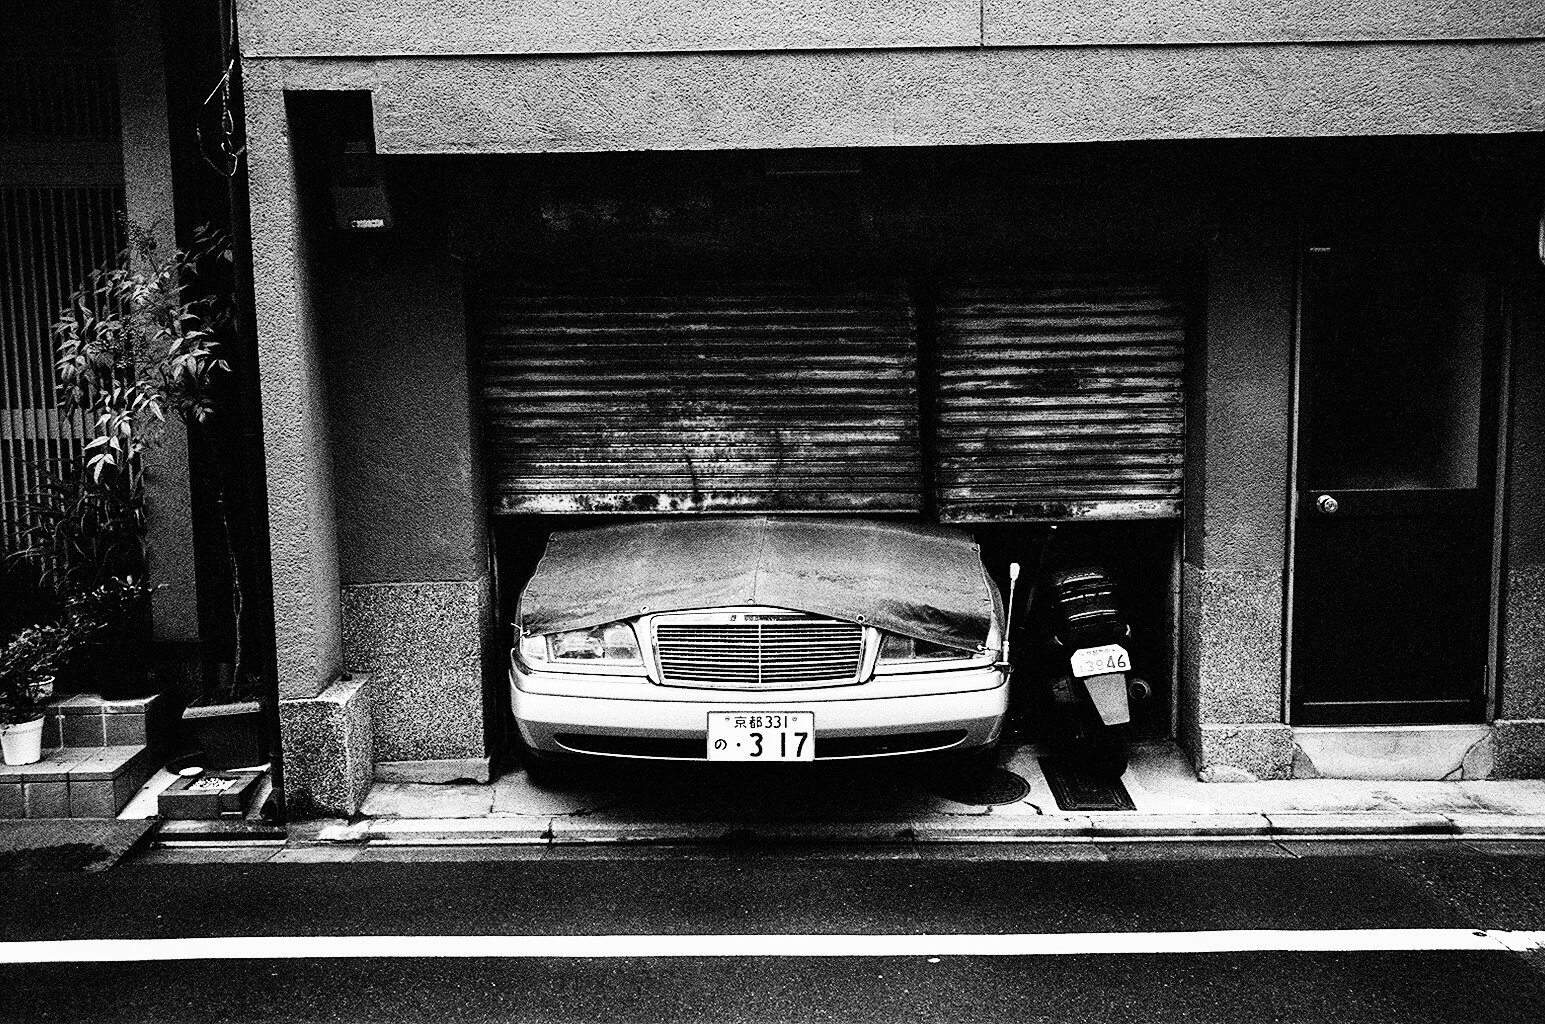 Kyoto, 2015 / Tri-X 400 pushed to 1600